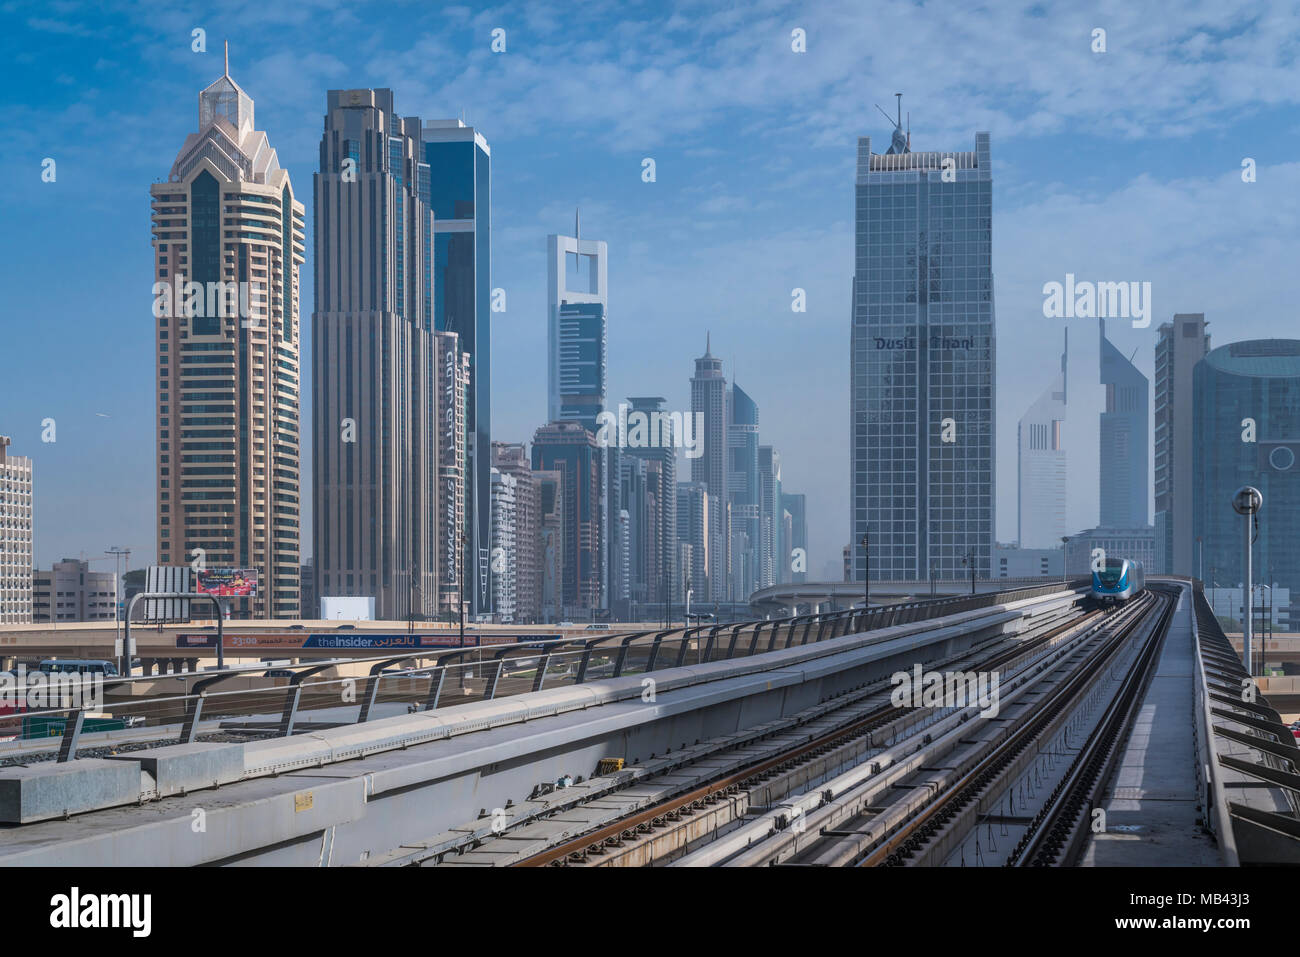 Tall buildings and the Metro train track in downtown Dubai, UAE, Middle East. - Stock Image